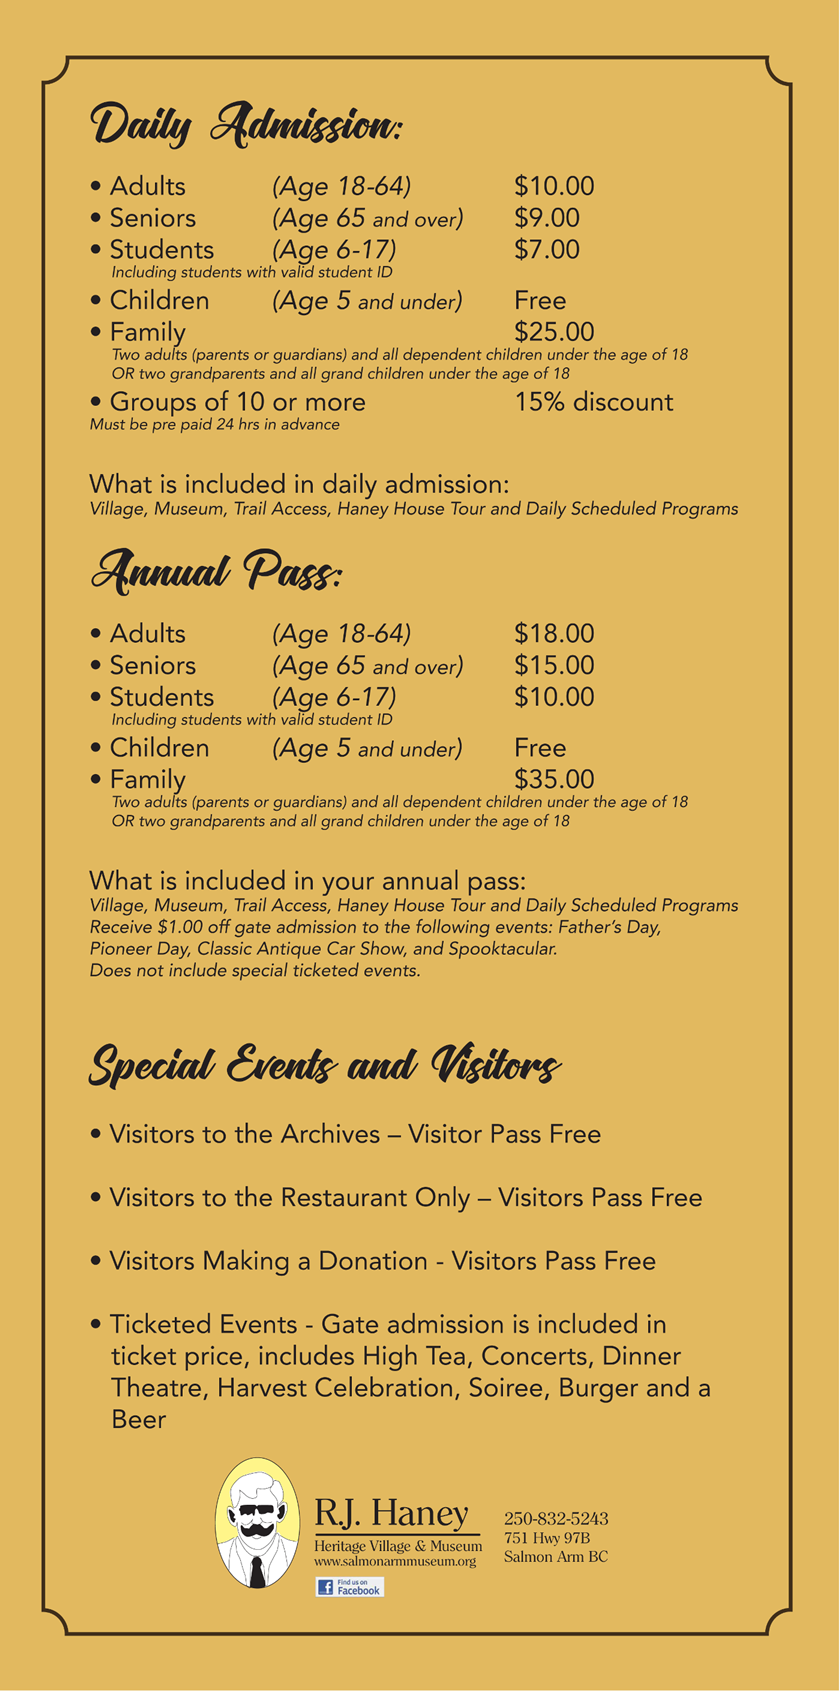 Pricing and Admission Rates at RJ Haney